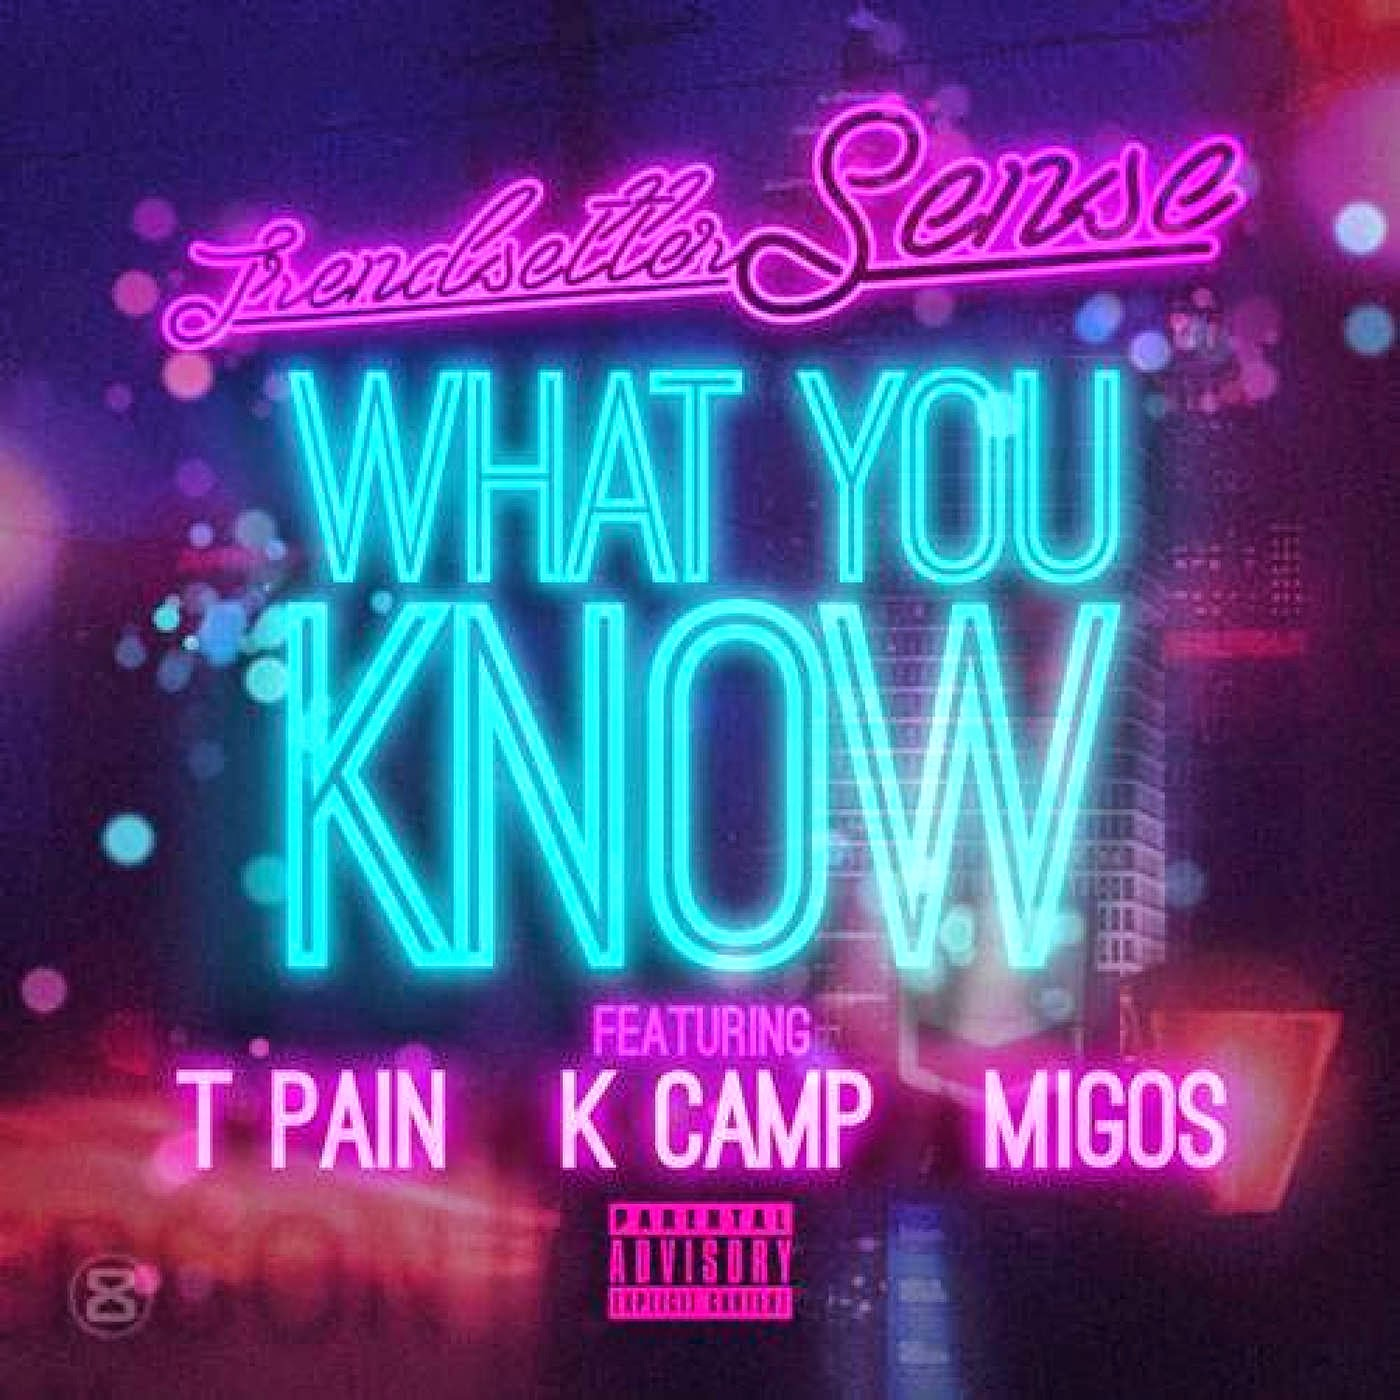 Trendsetter Sense - What You Know (feat. T-Pain, K Camp & Migos) - Single Cover